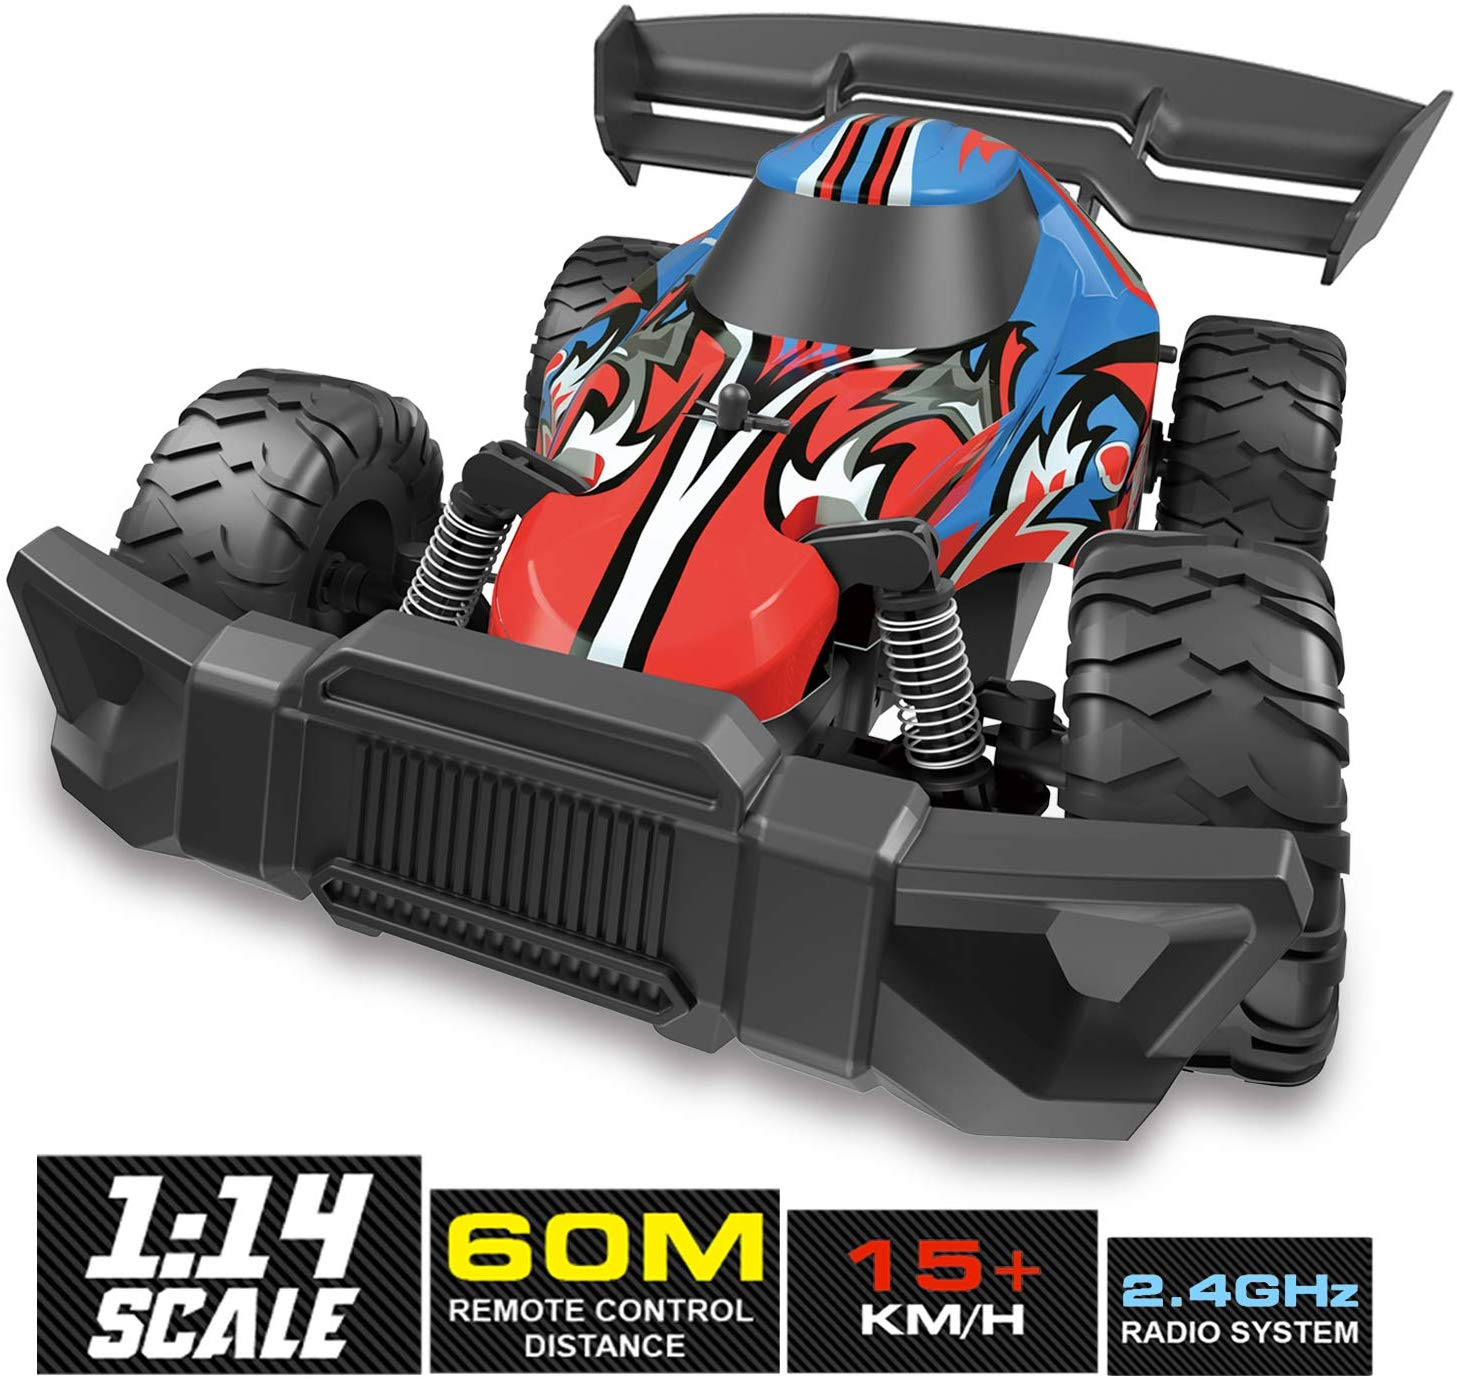 Remote Control Car 1:14 Large Size High Speed Off Road Kids RC Racing Car Boys Radio Controlled Crawler Electronic Vehicle Truck  Blue red